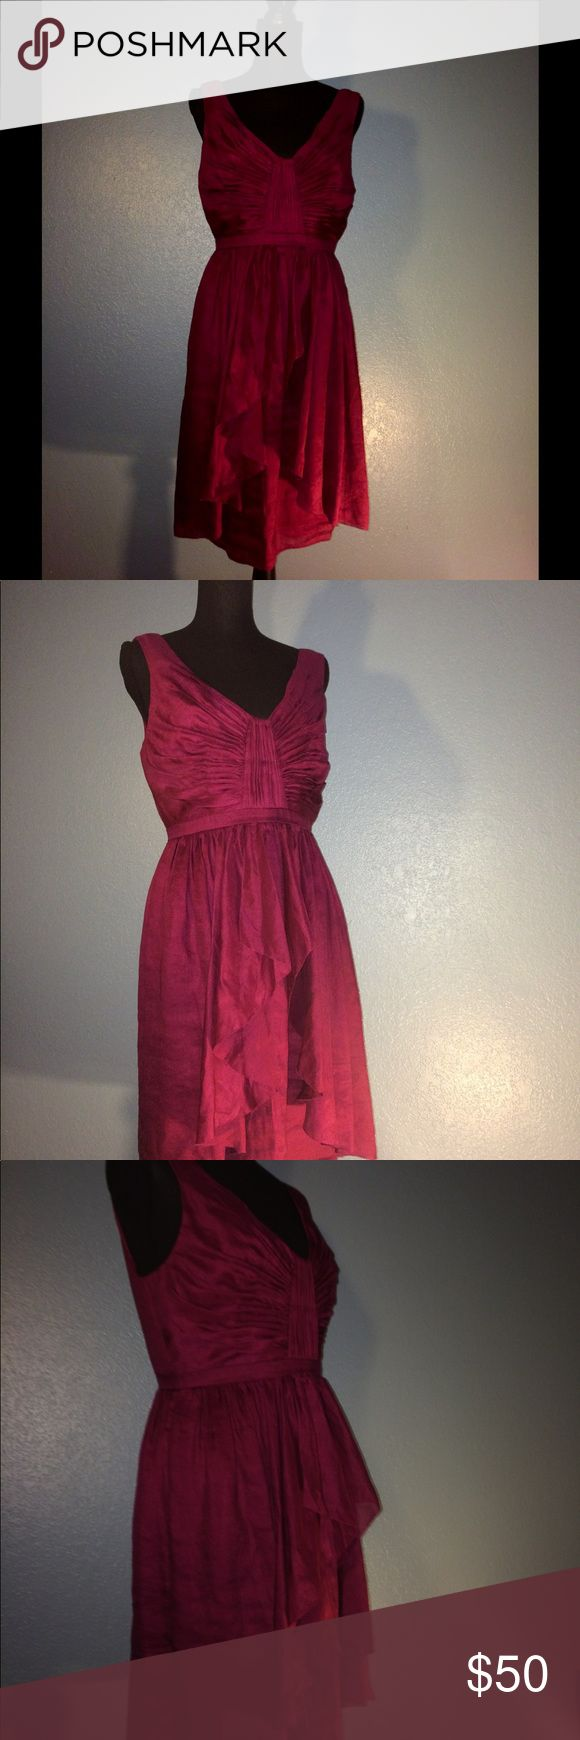 Fuchsia Dress by Quillaree Anthropologie Beautiful. Silk and Linen. Perfect Condition. Anthropologie Dresses